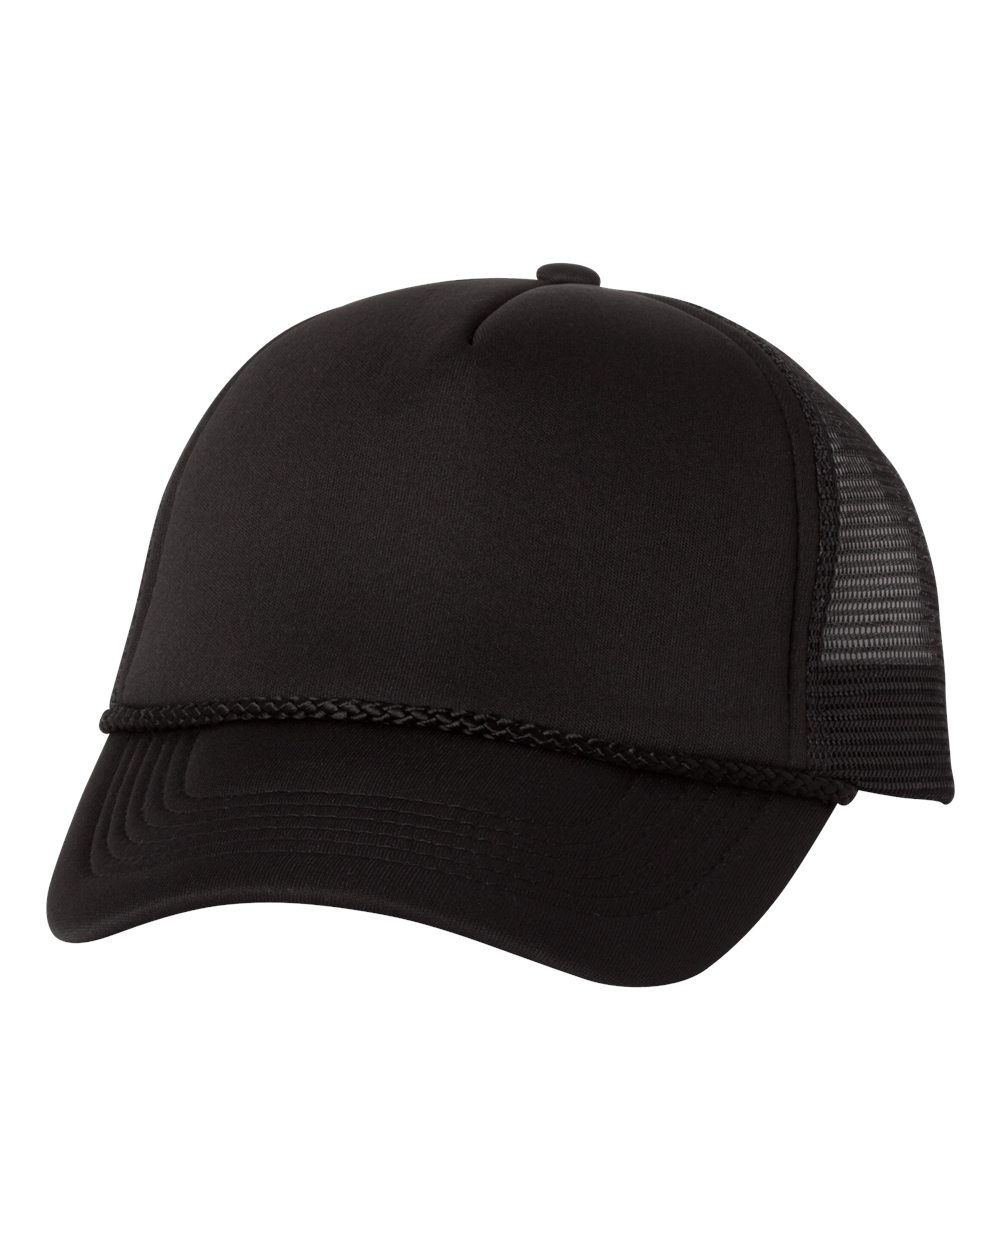 Valucap VC700 Foam Trucker Cap